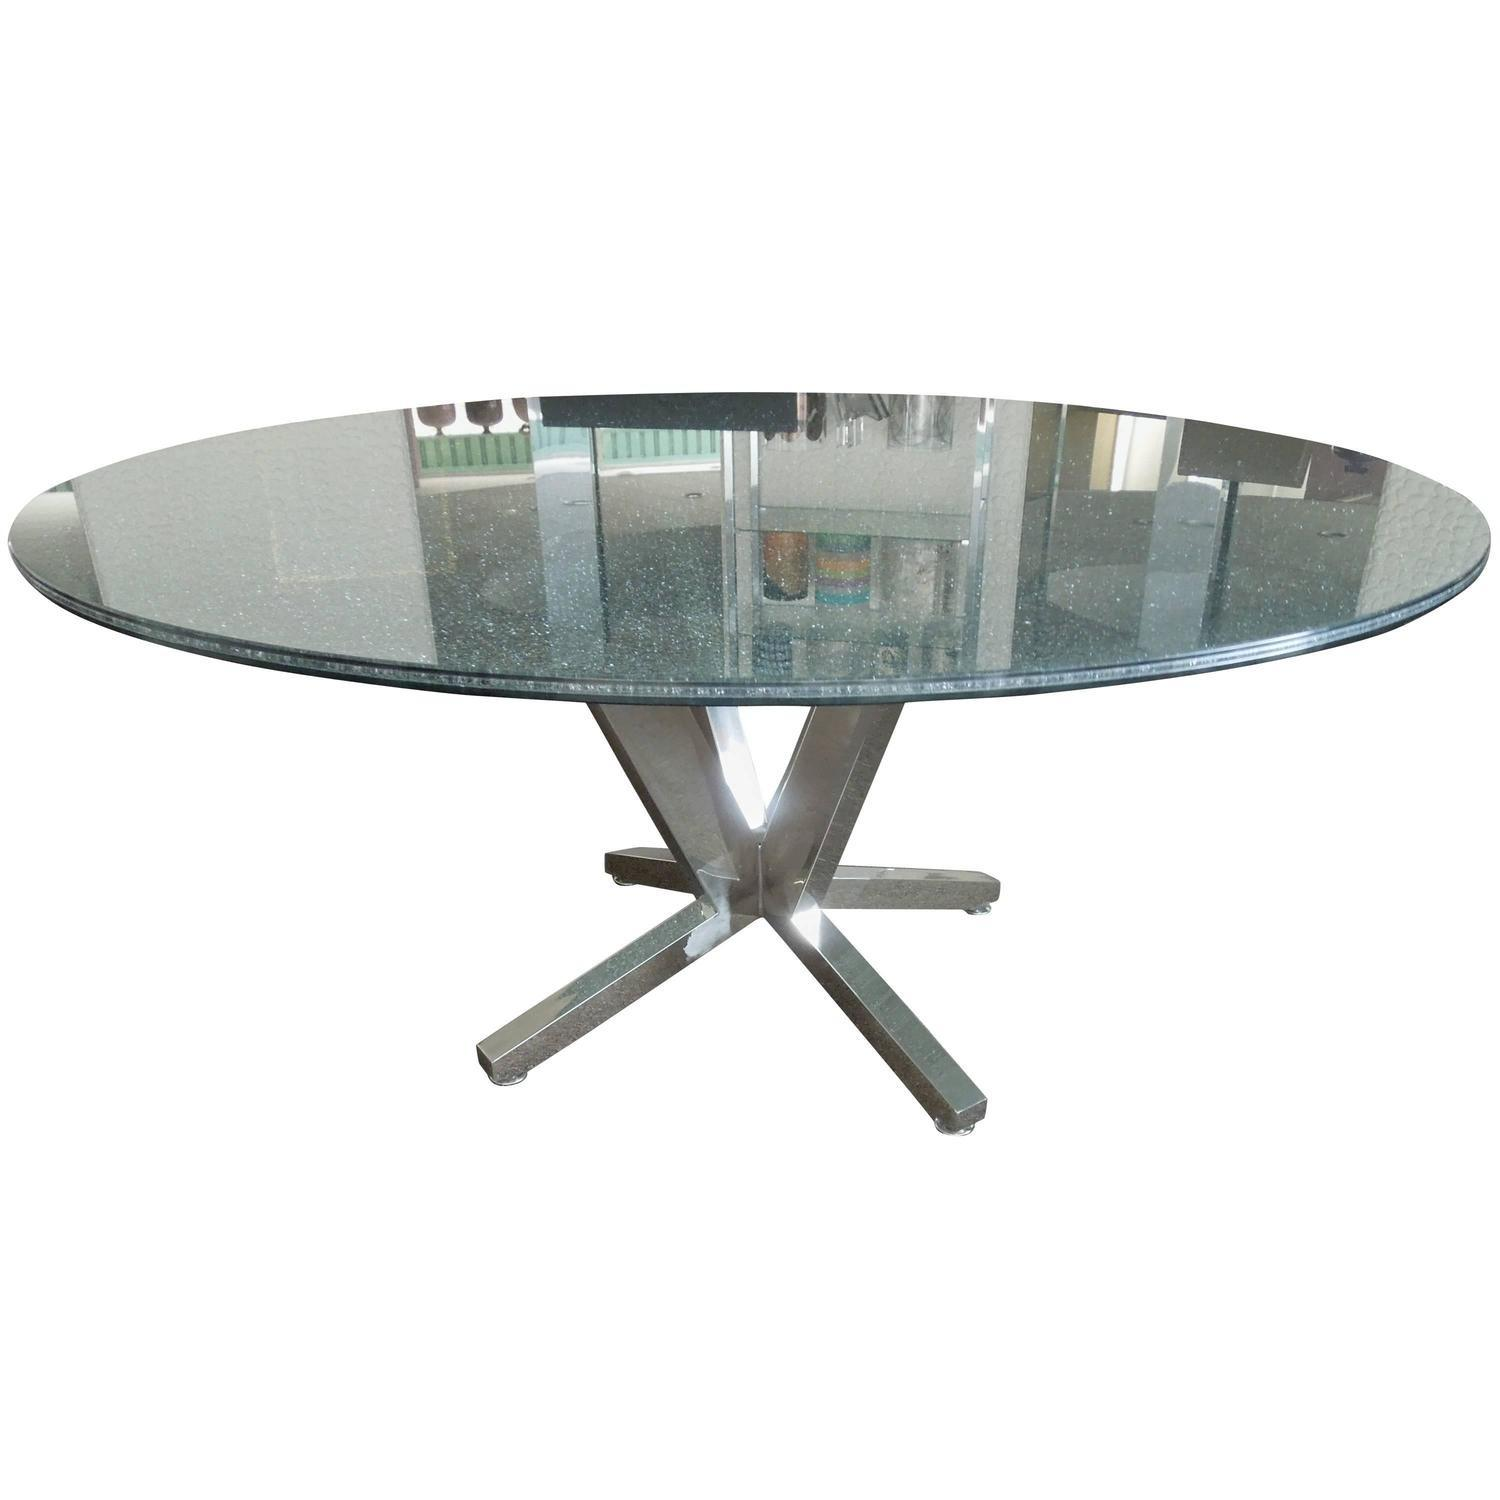 Contemporary Crackle Glass Chrome Sculptural Dining